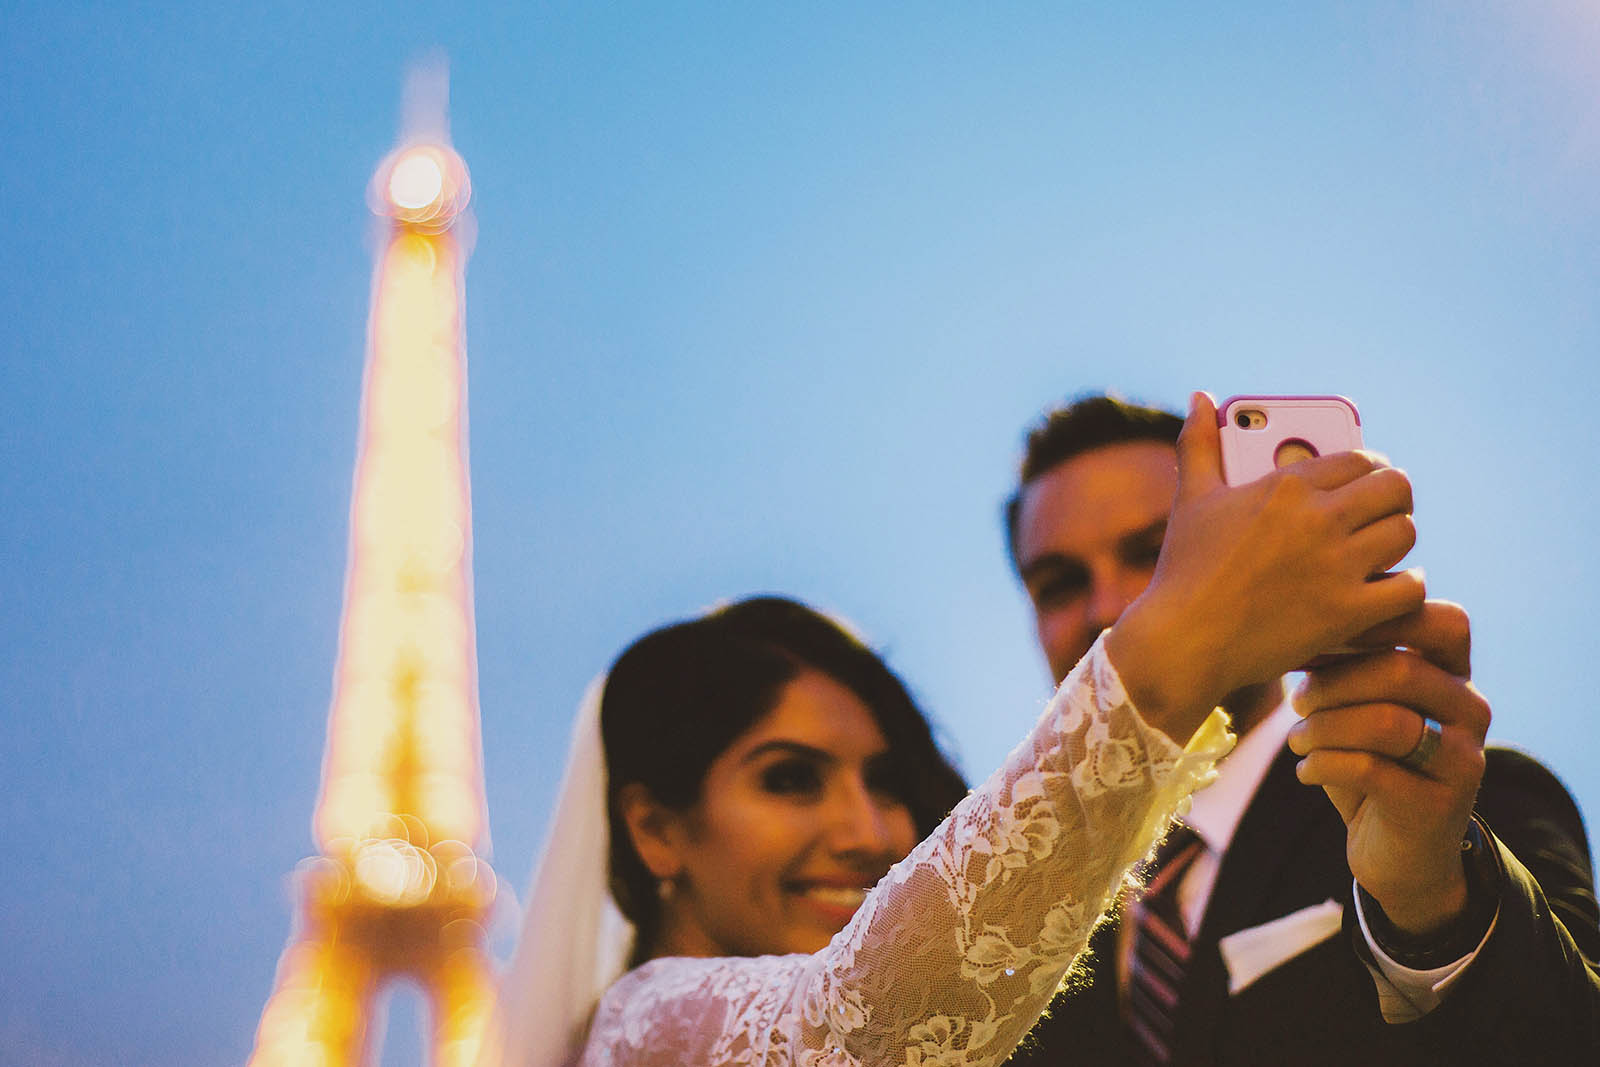 Taking selfies at the Eiffel Tower | Springtime Paris Elopement at Parc des Buttes Chaumont